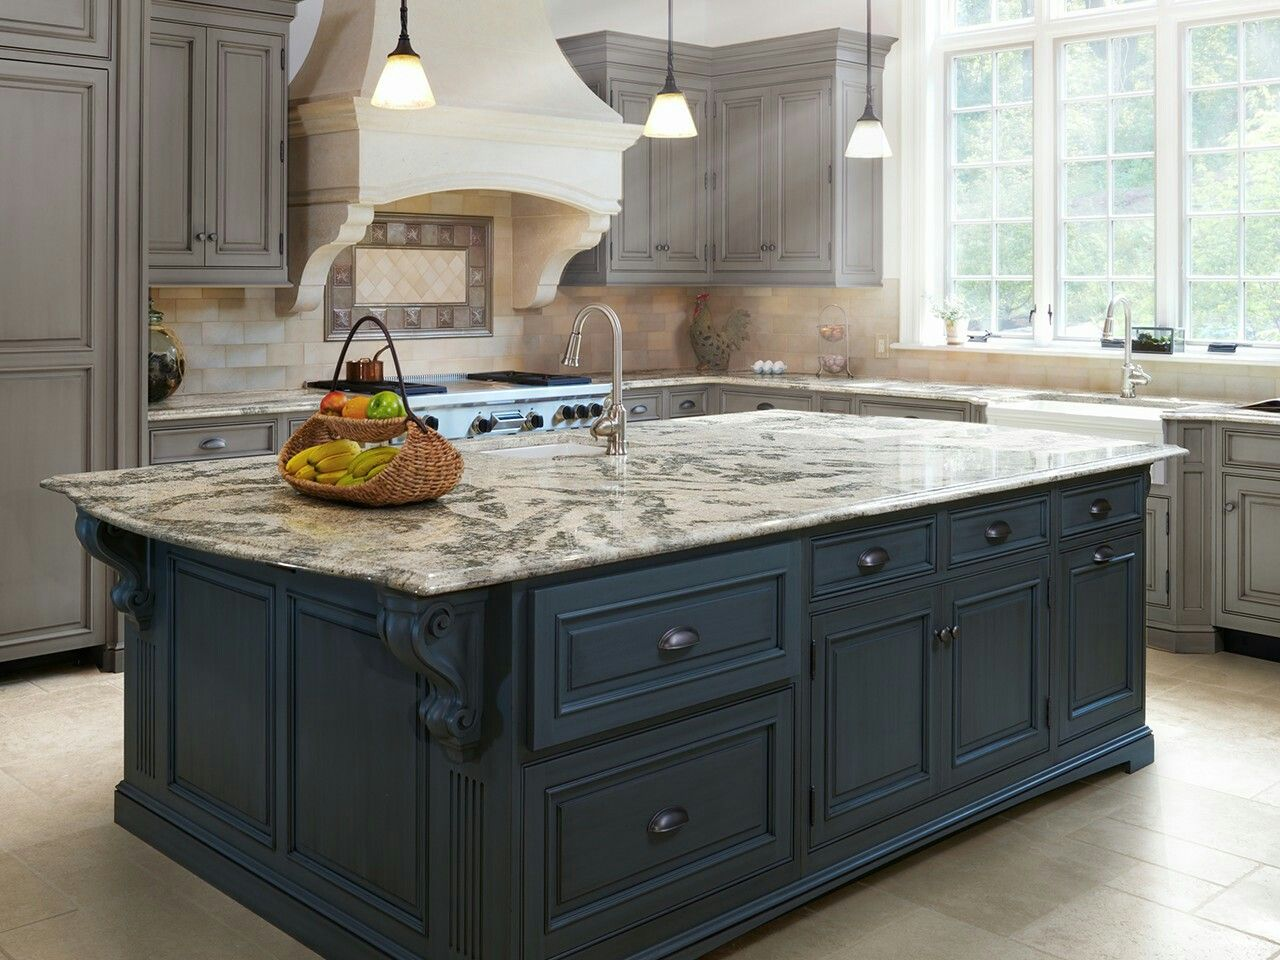 Cambria langdon gray toned cabinets two toned subway tile